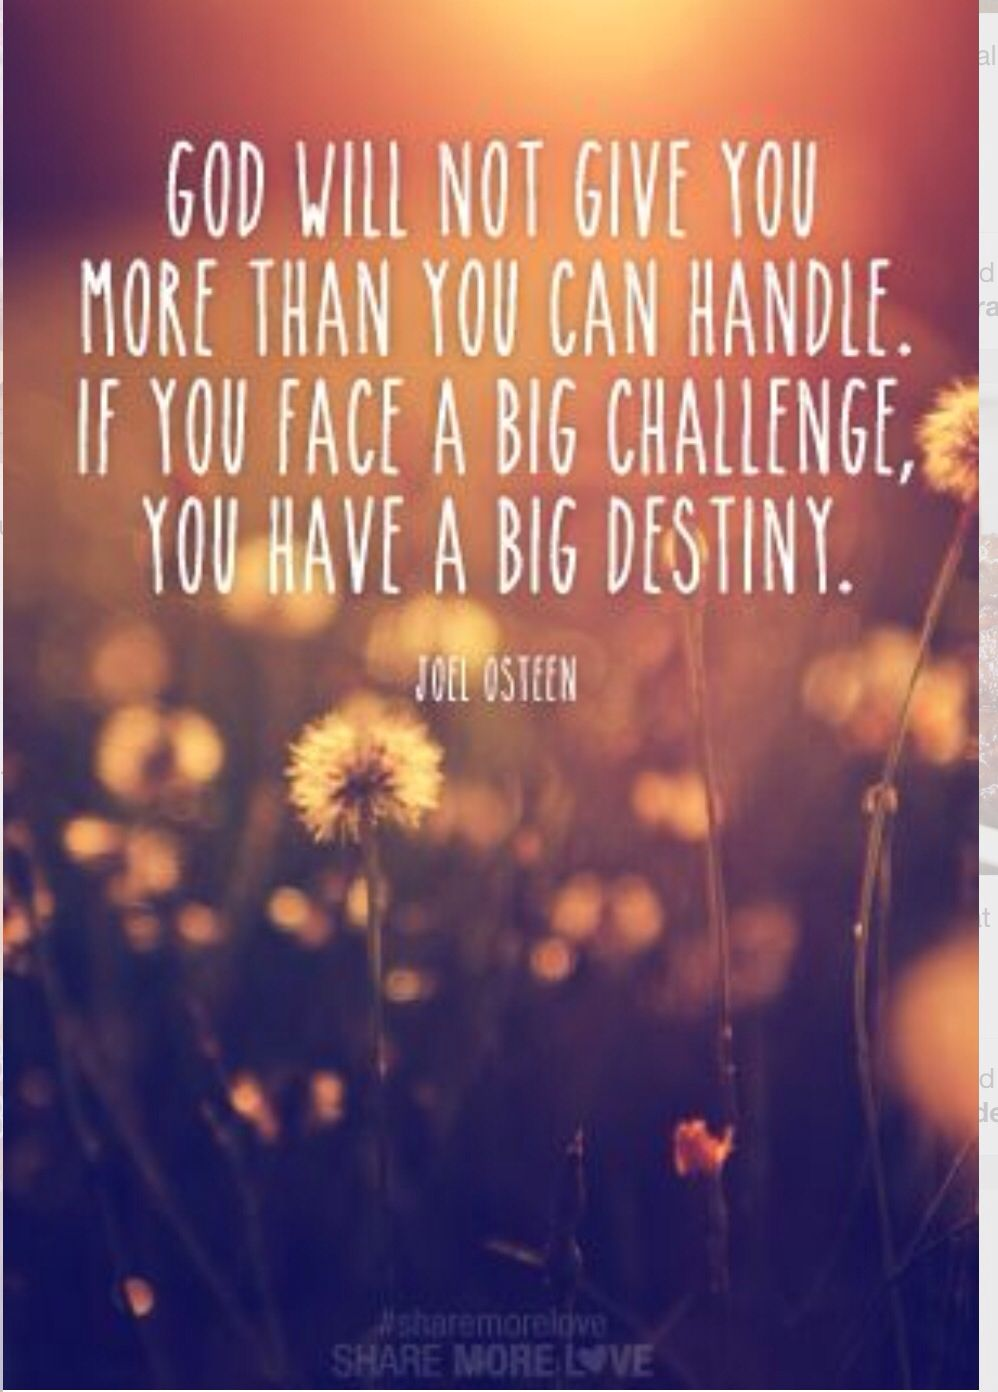 well apparently my destiny is huge lol quotes about strength in